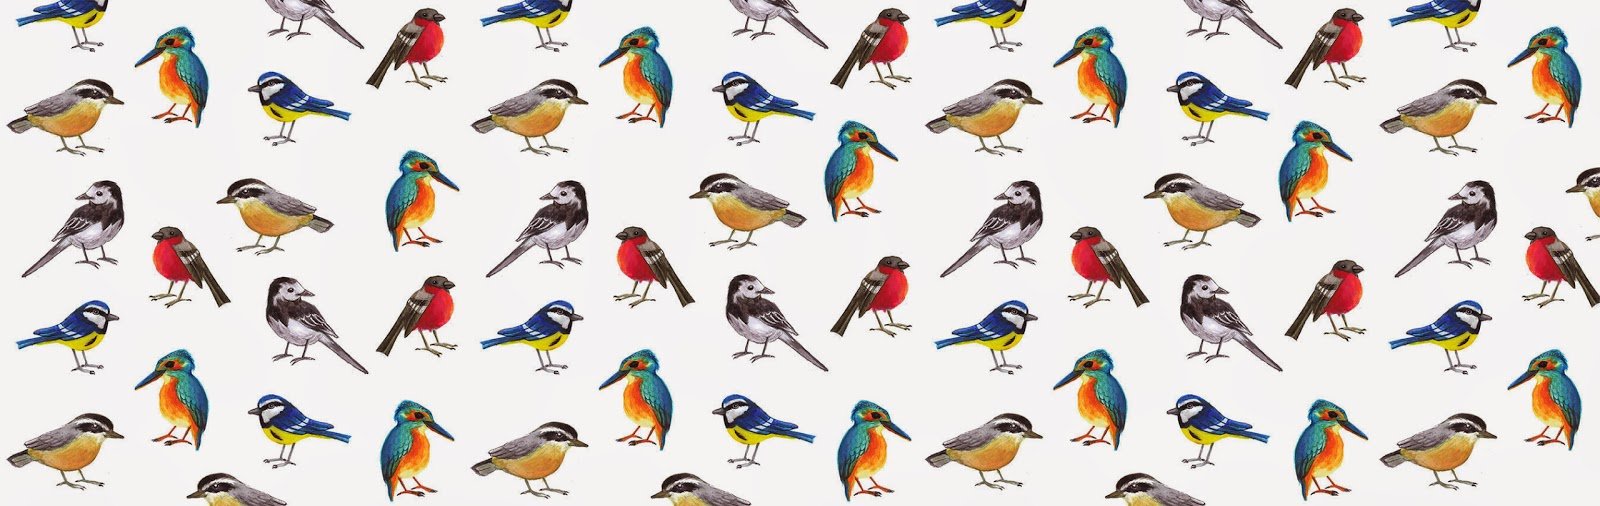 British birds - Jen Haugan Animation & Illustration